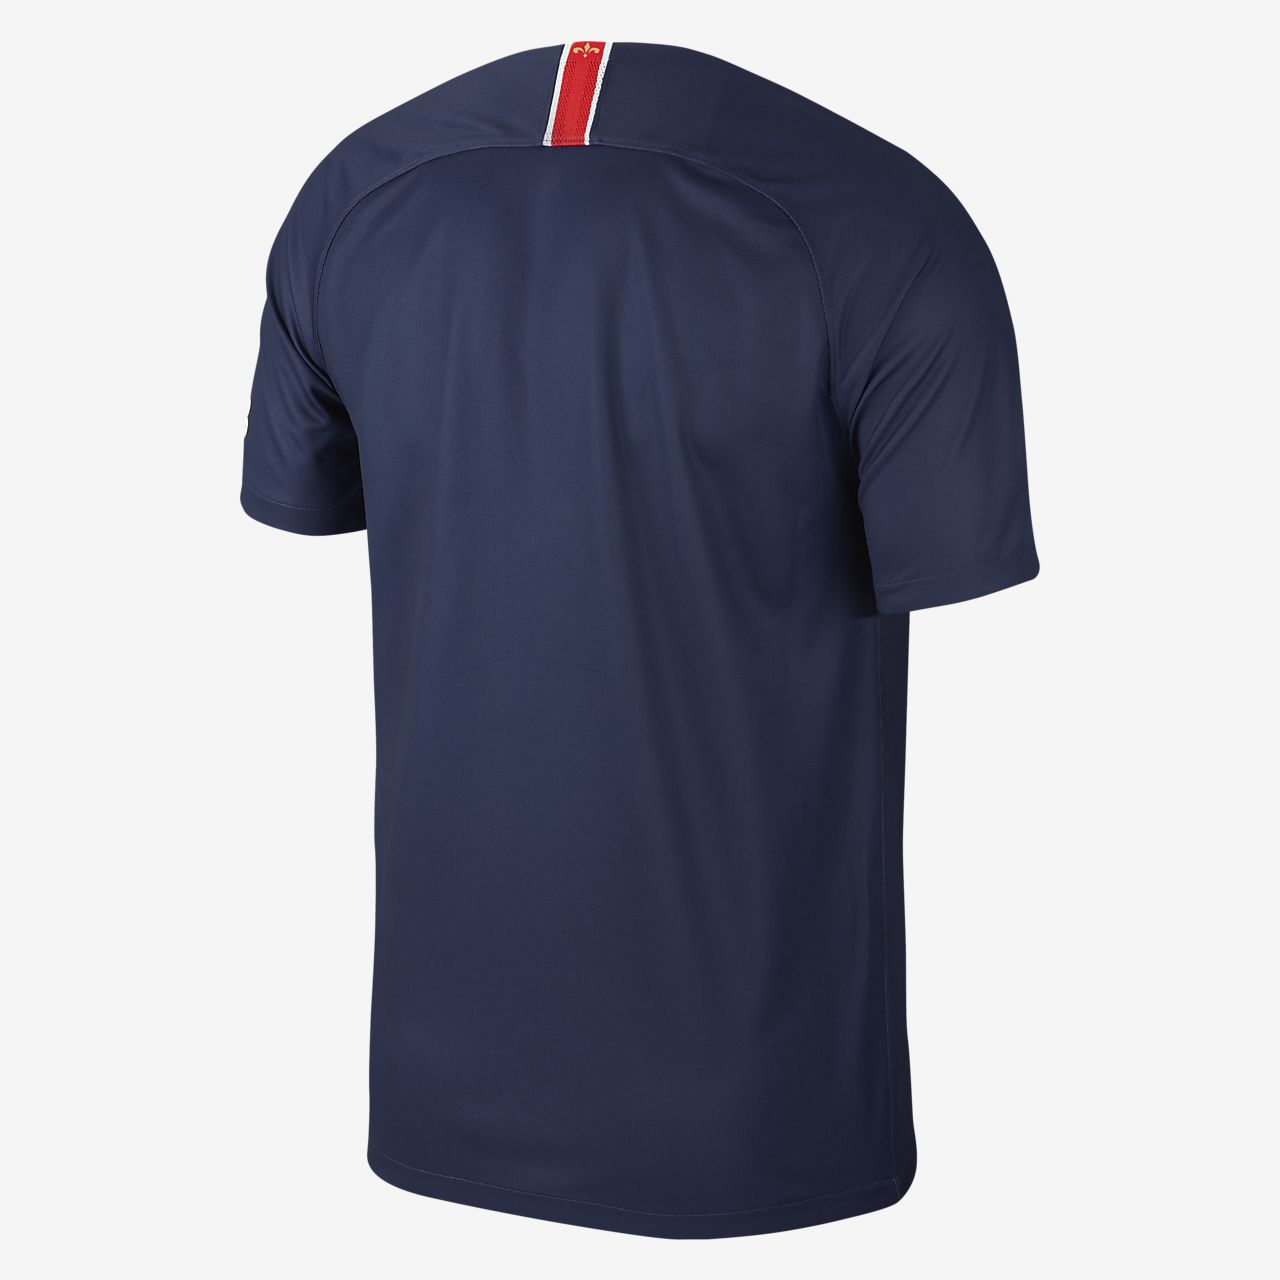 e2c571ba94416 ... Camiseta de fútbol para hombre 2018 19 Paris Saint-Germain Stadium Home